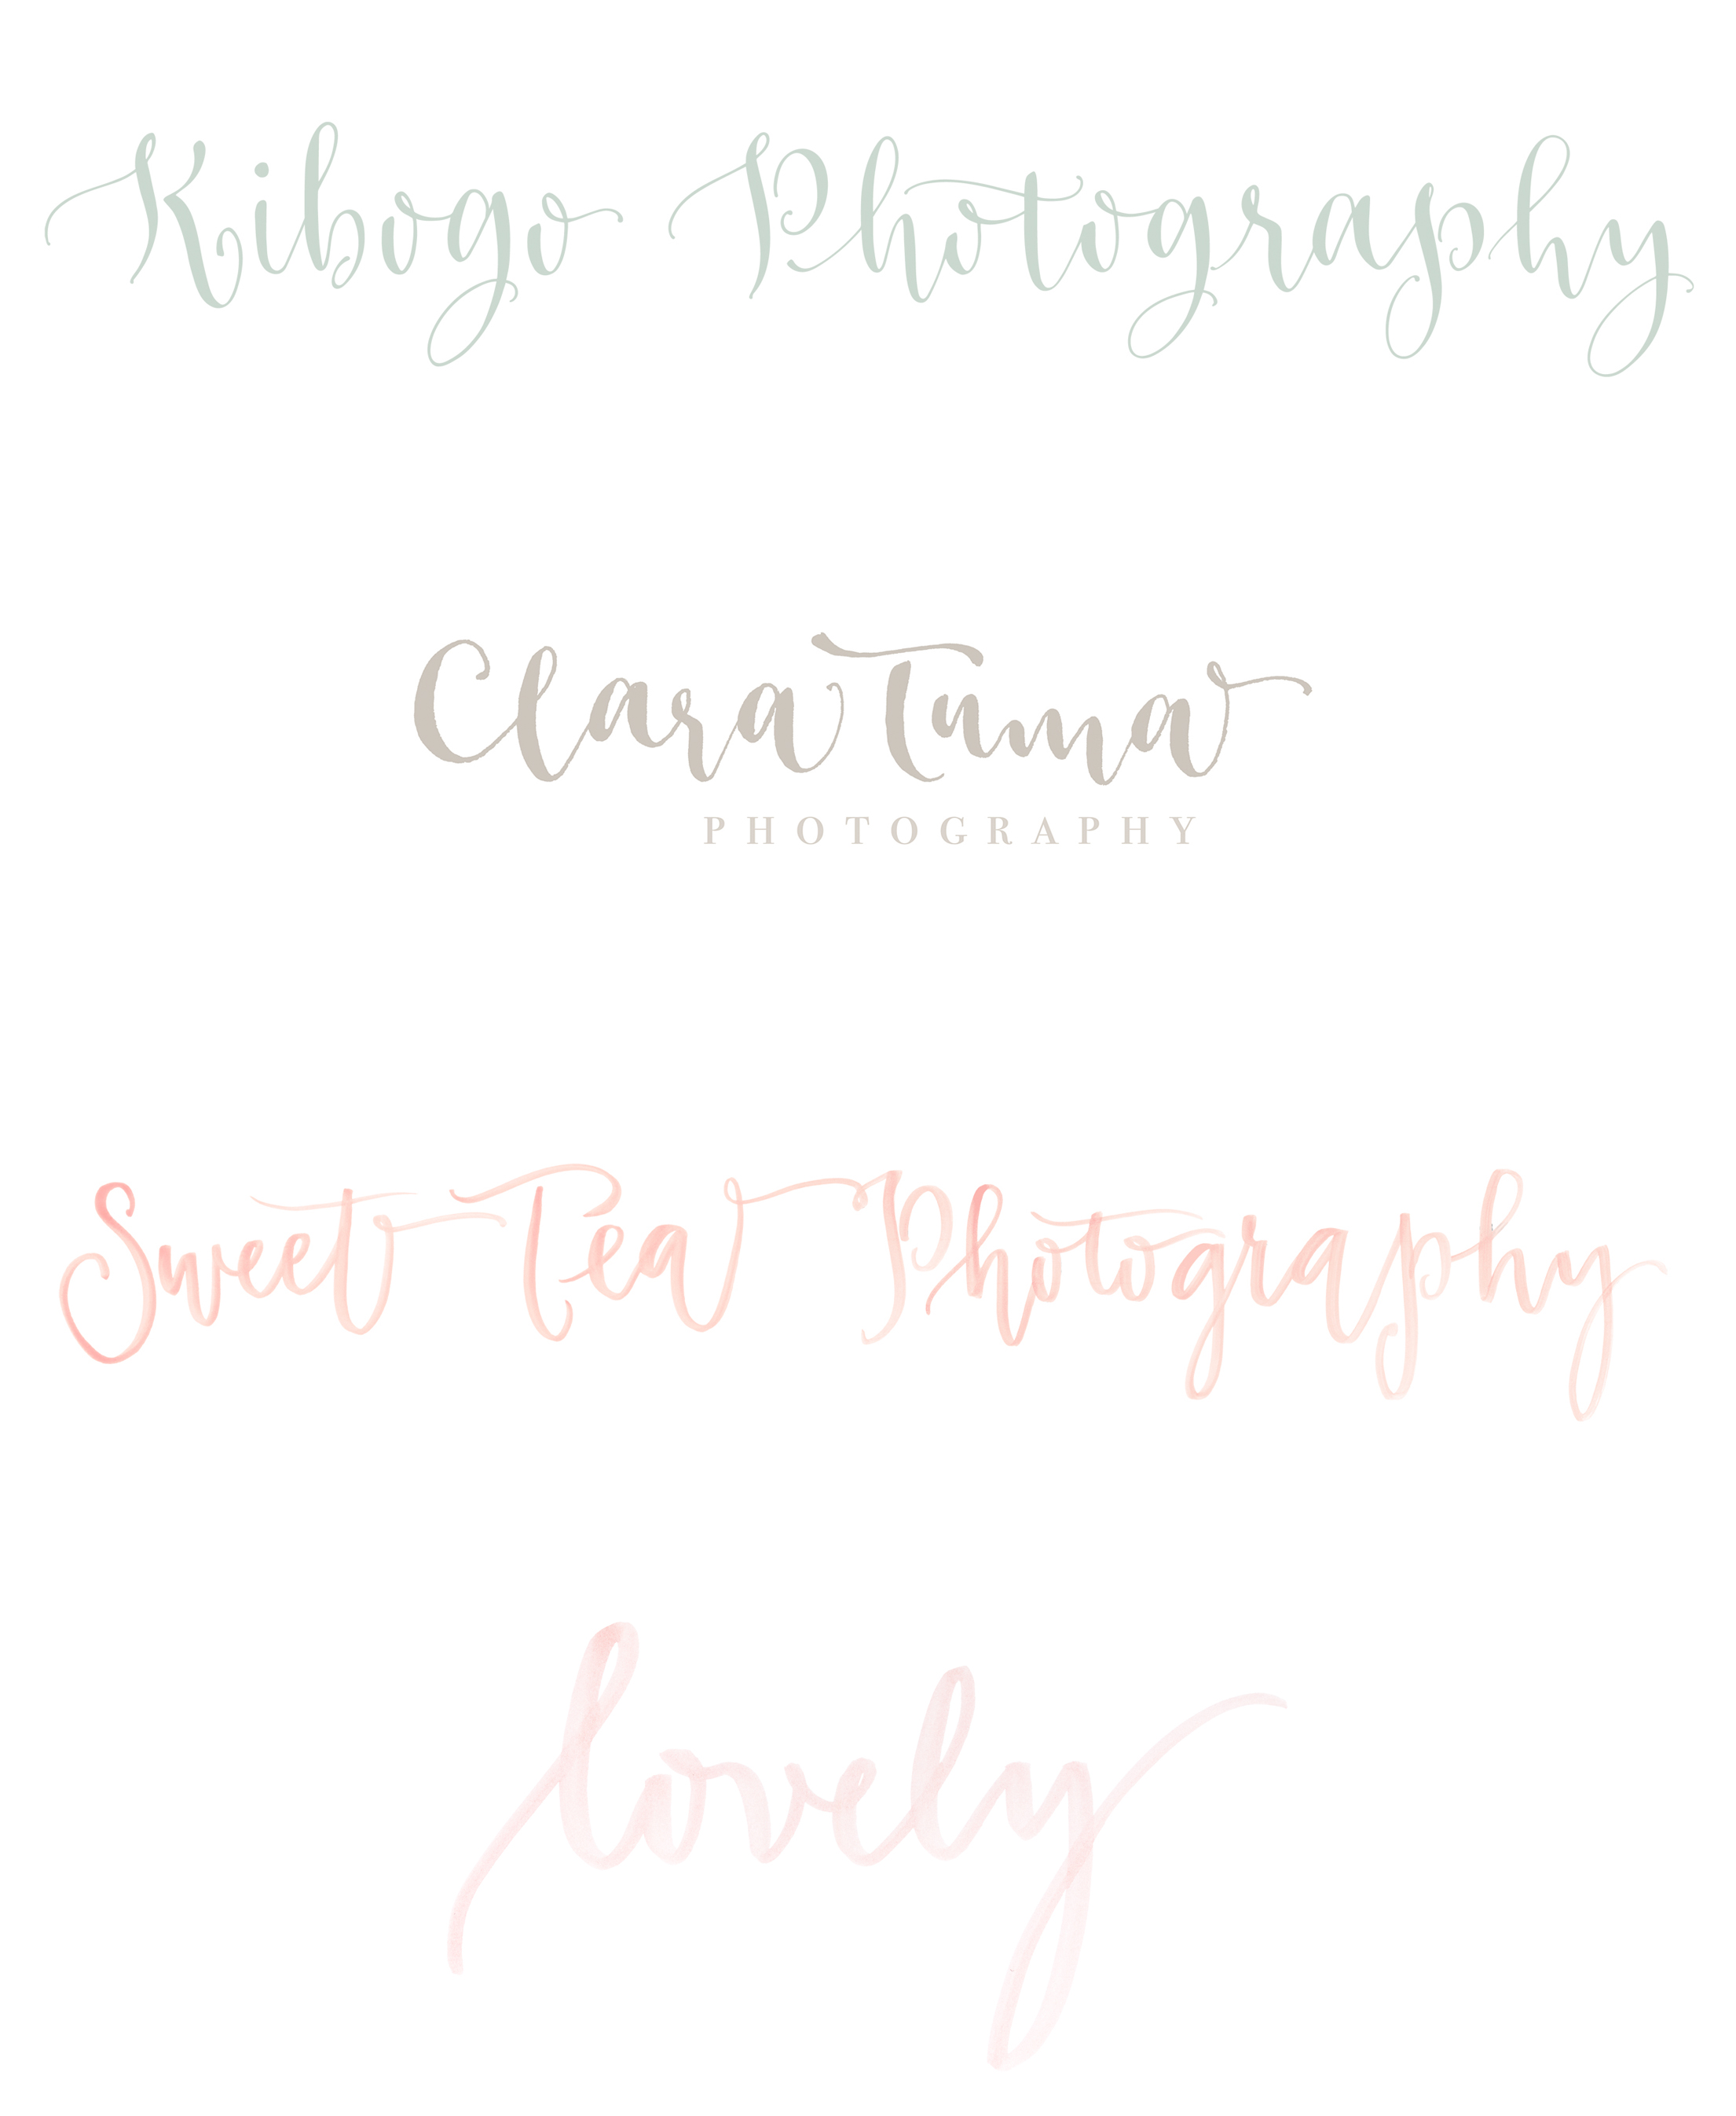 Custom logo design in modern calligraphy and lettering